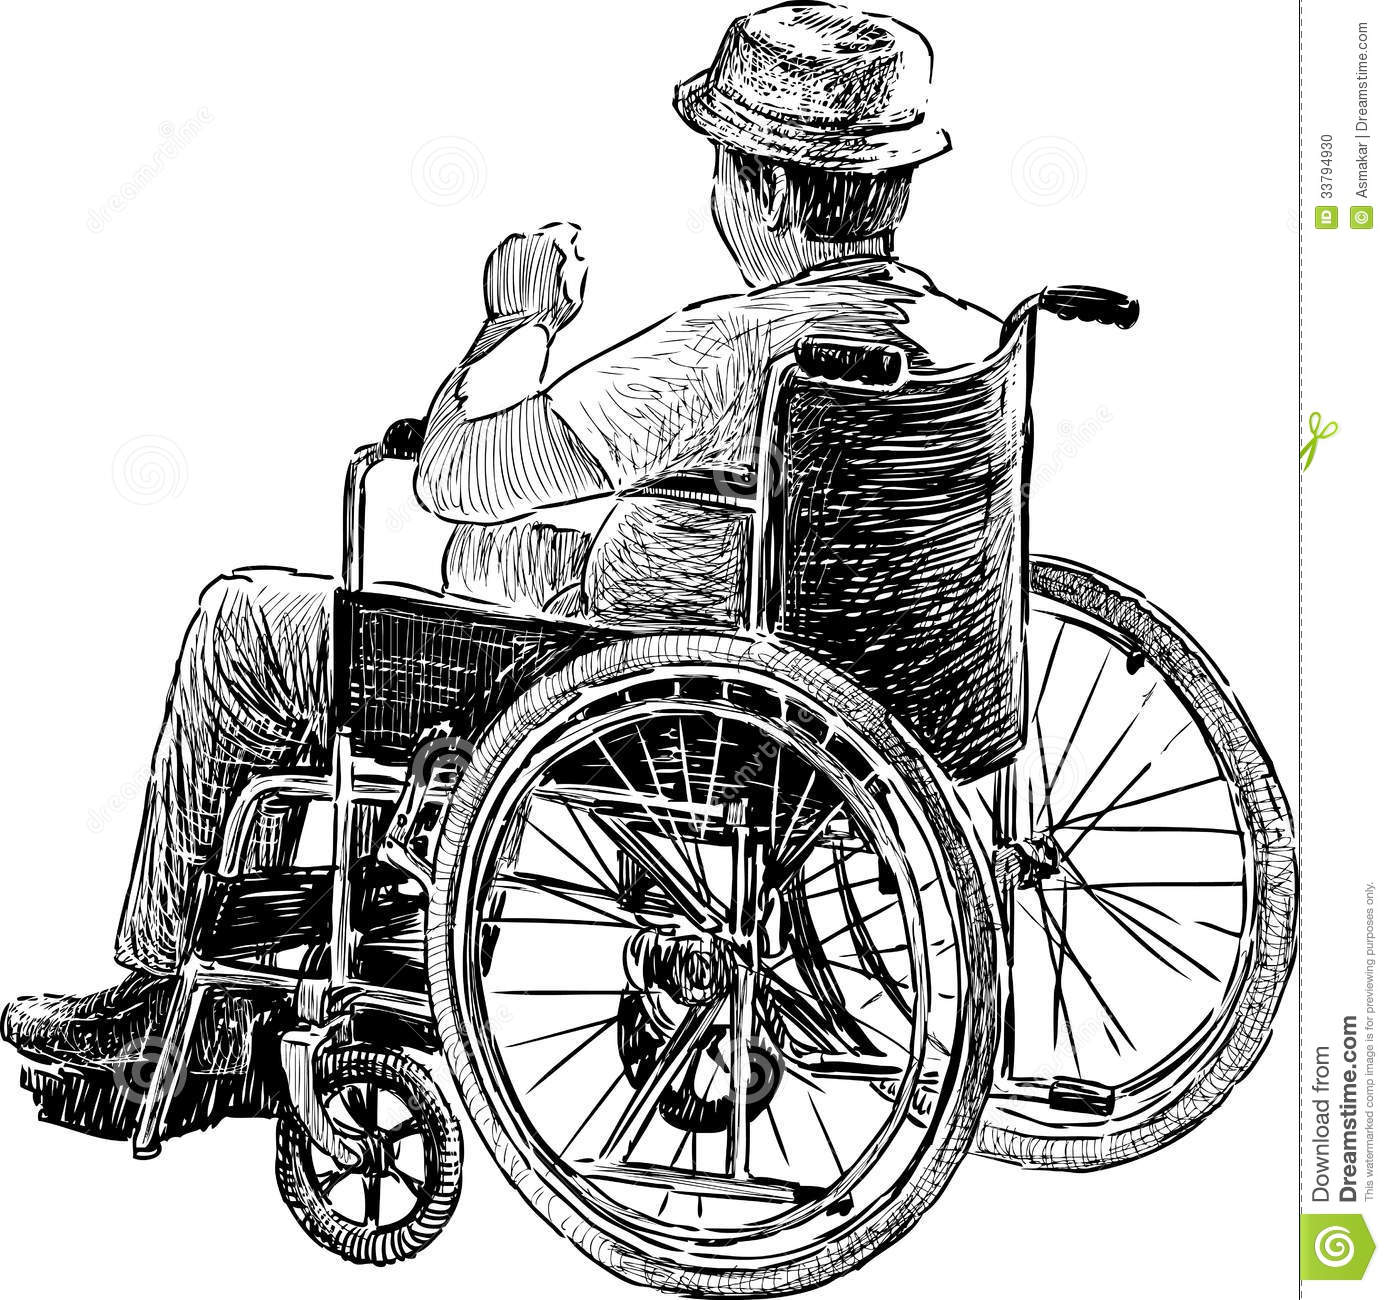 dd16d38d3ef49 Person in wheelchair stock vector. Illustration of wheelchair - 33794930